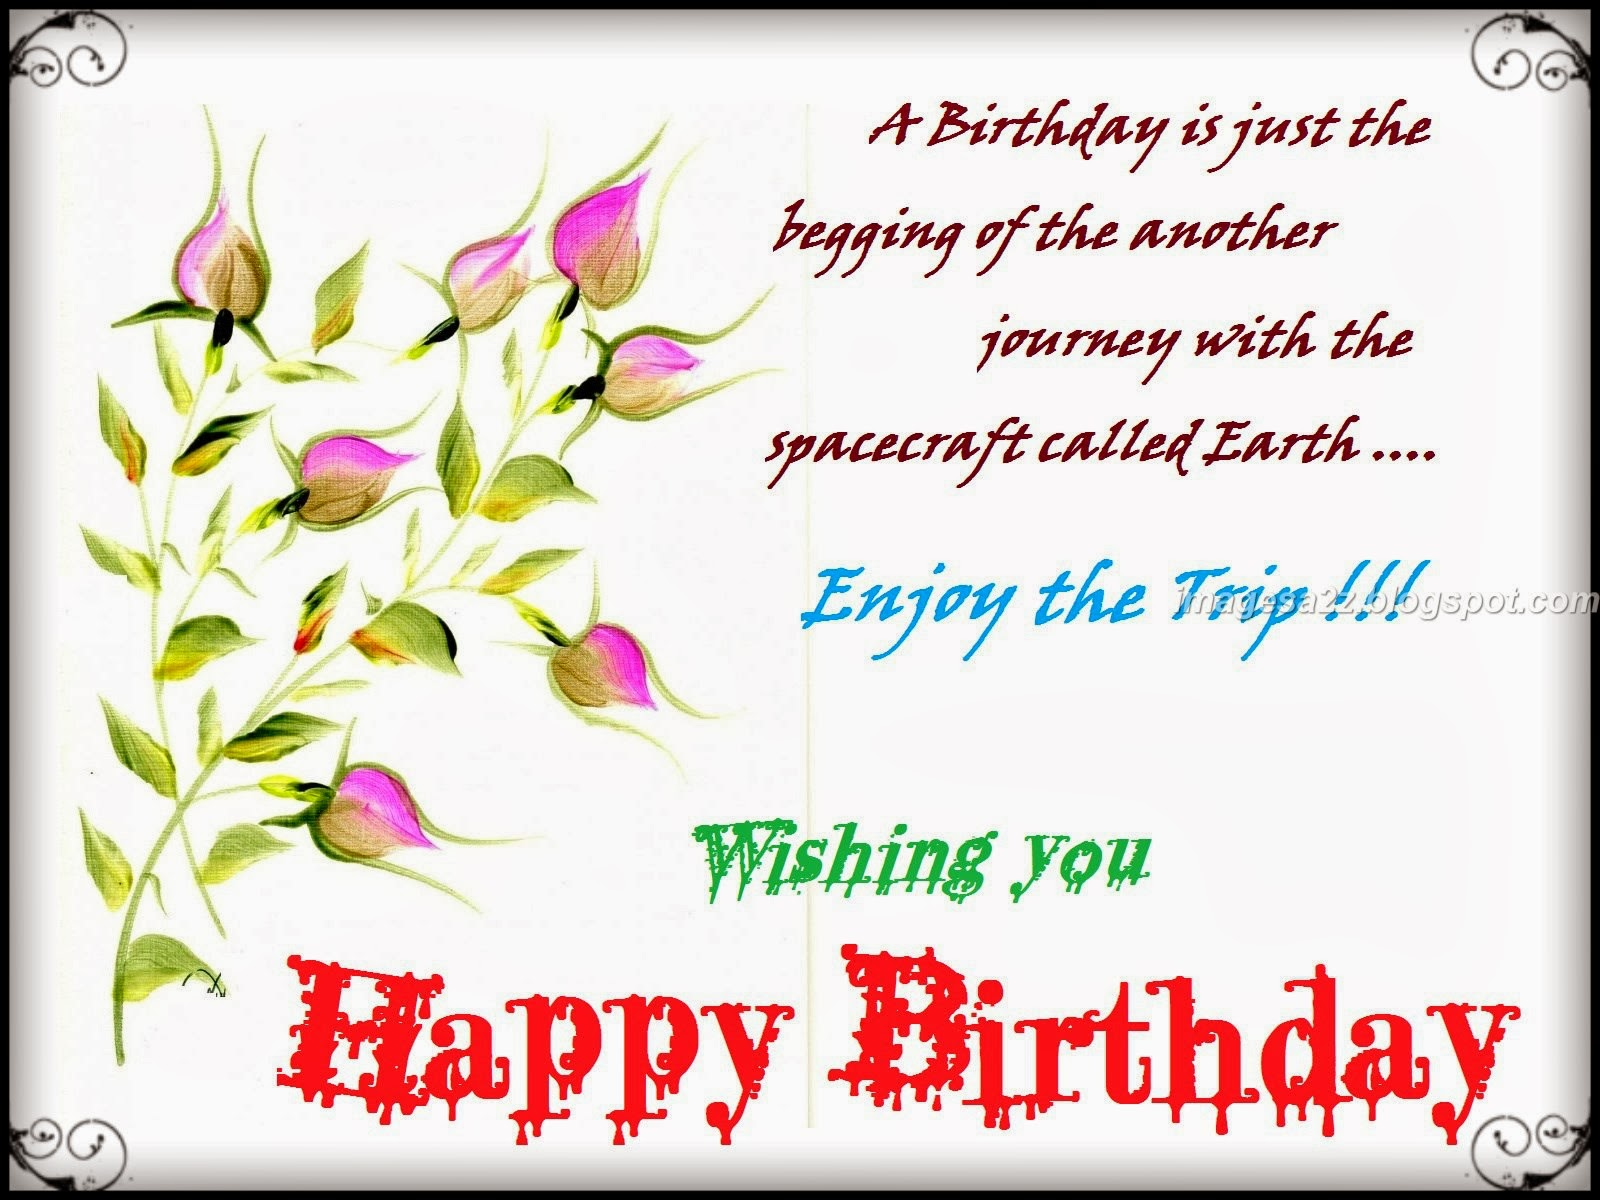 Wishing You Happy Birthday Enjoy The Trip